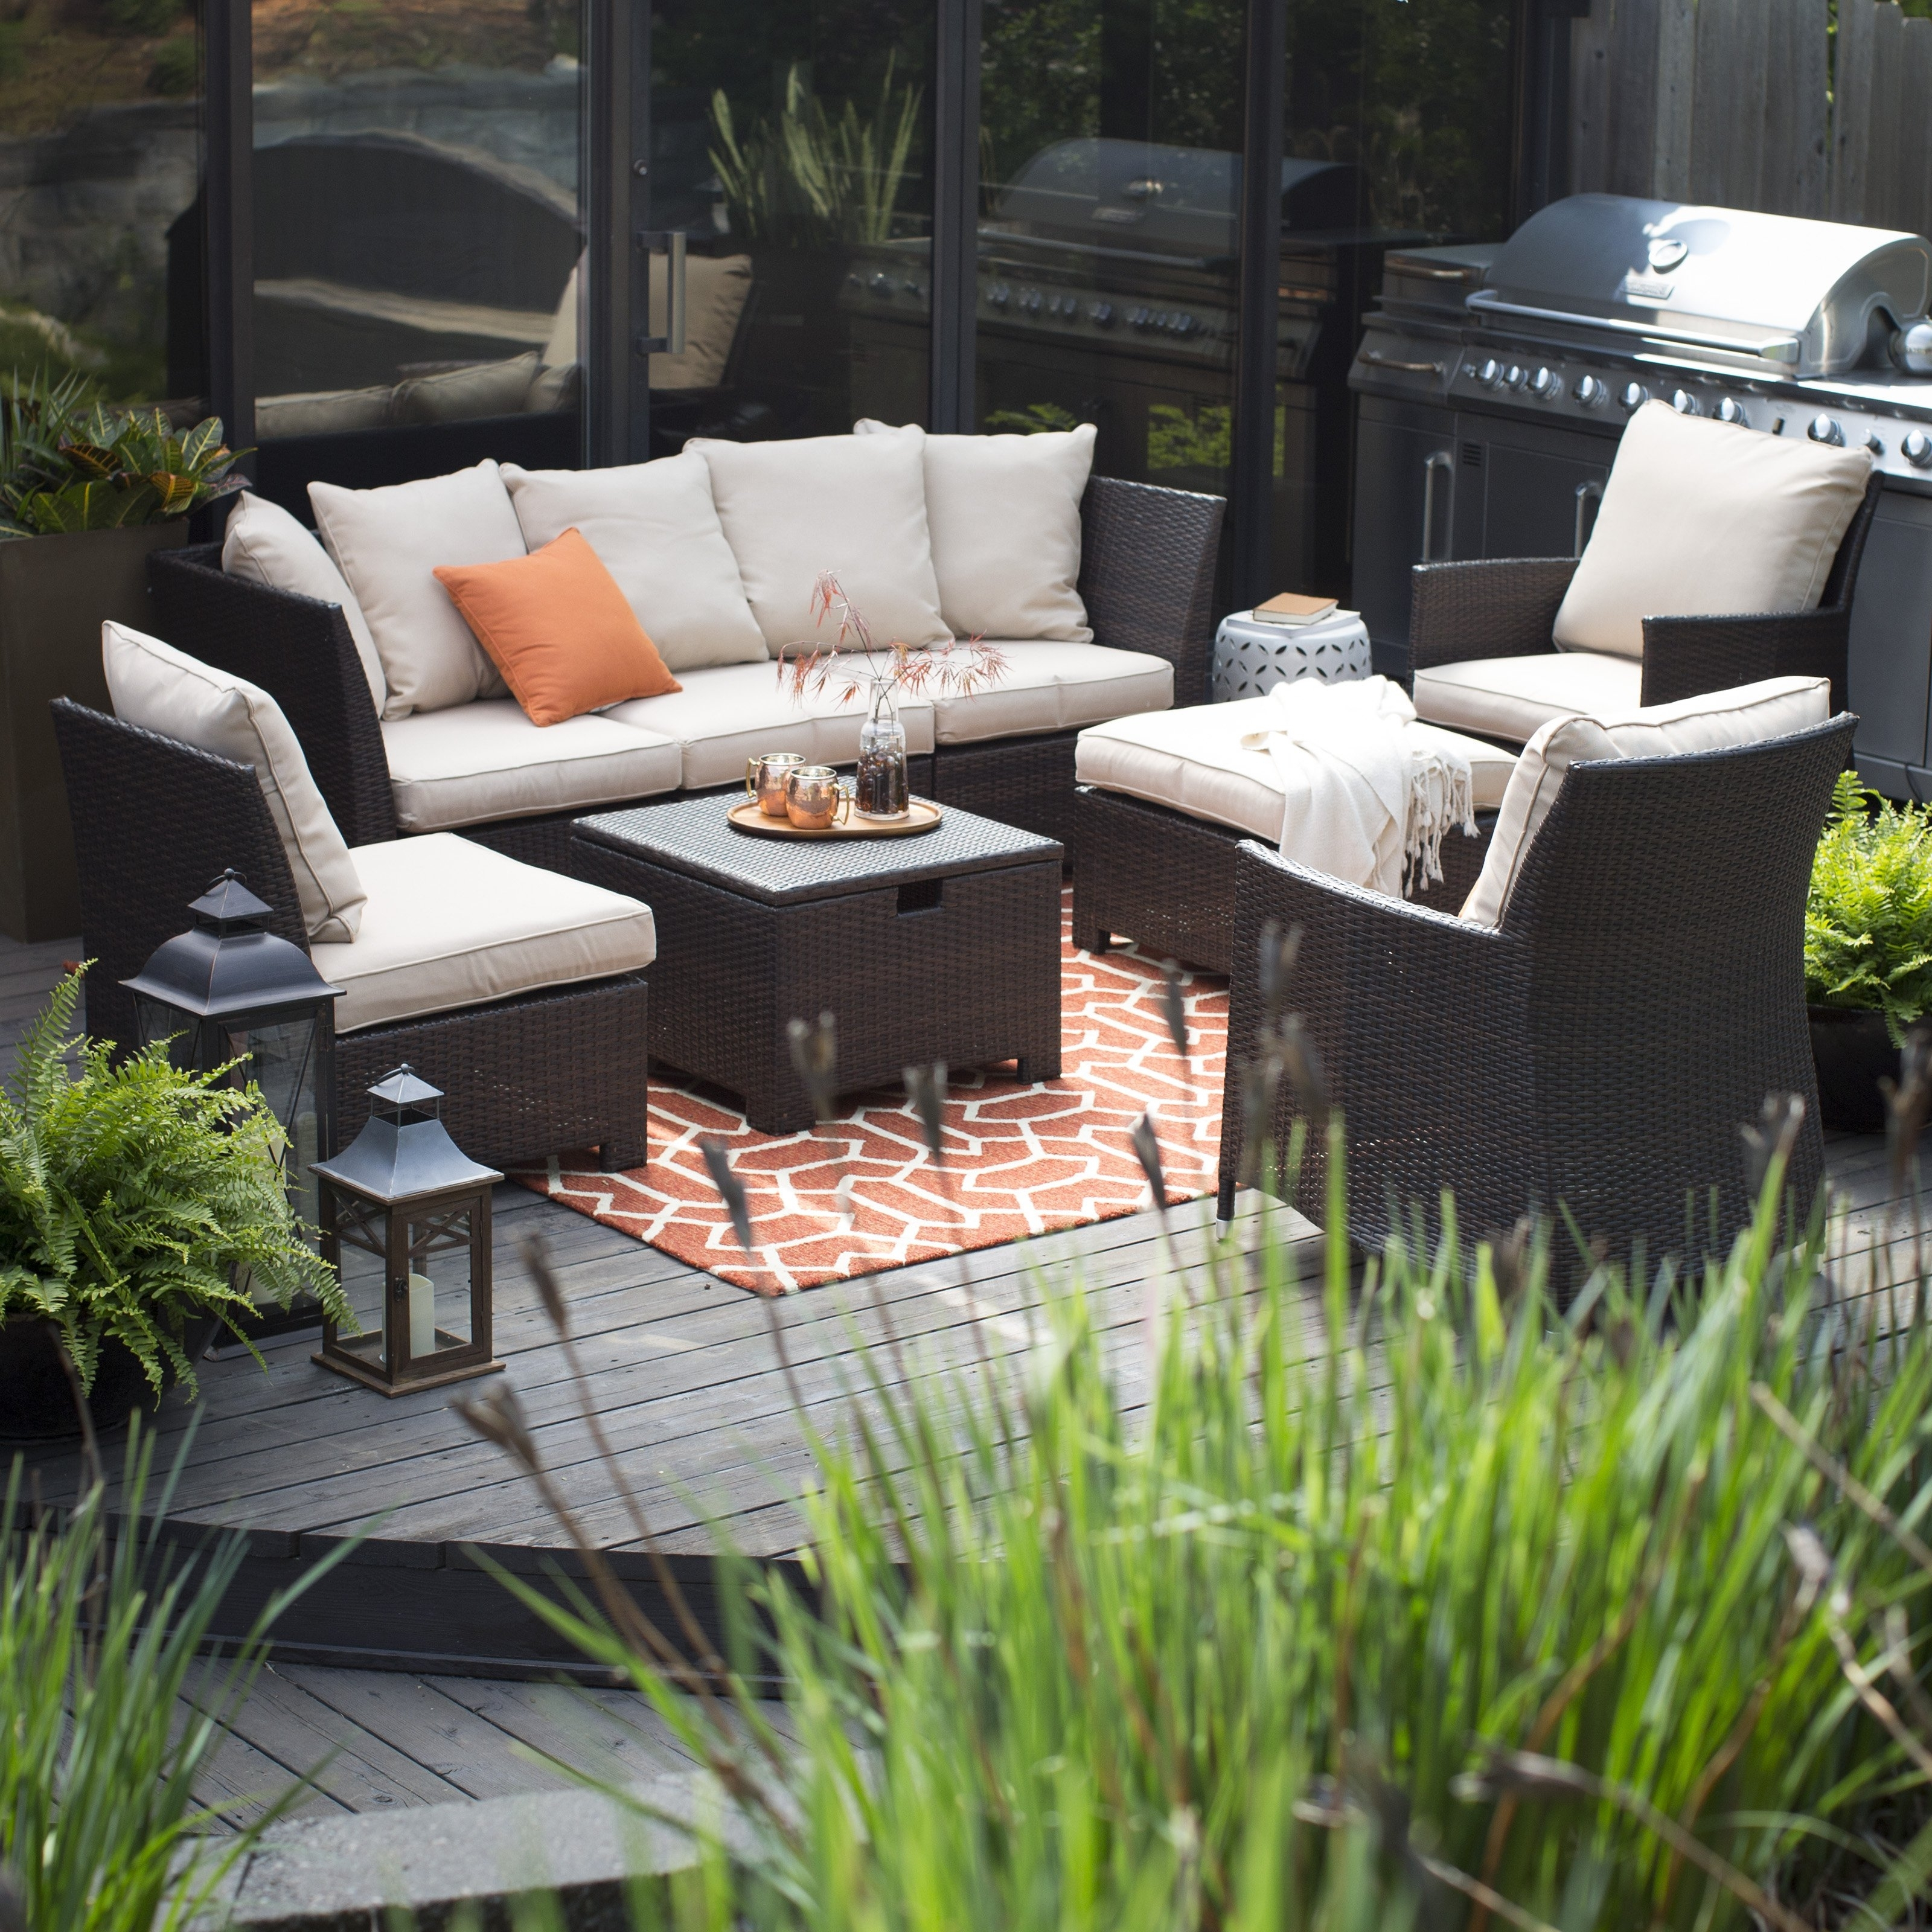 Patio Conversation Sets With Ottomans Pertaining To Most Up To Date Furniture: Appealing Dark Wicker Sofa With White Cushions And Wicker (View 6 of 20)